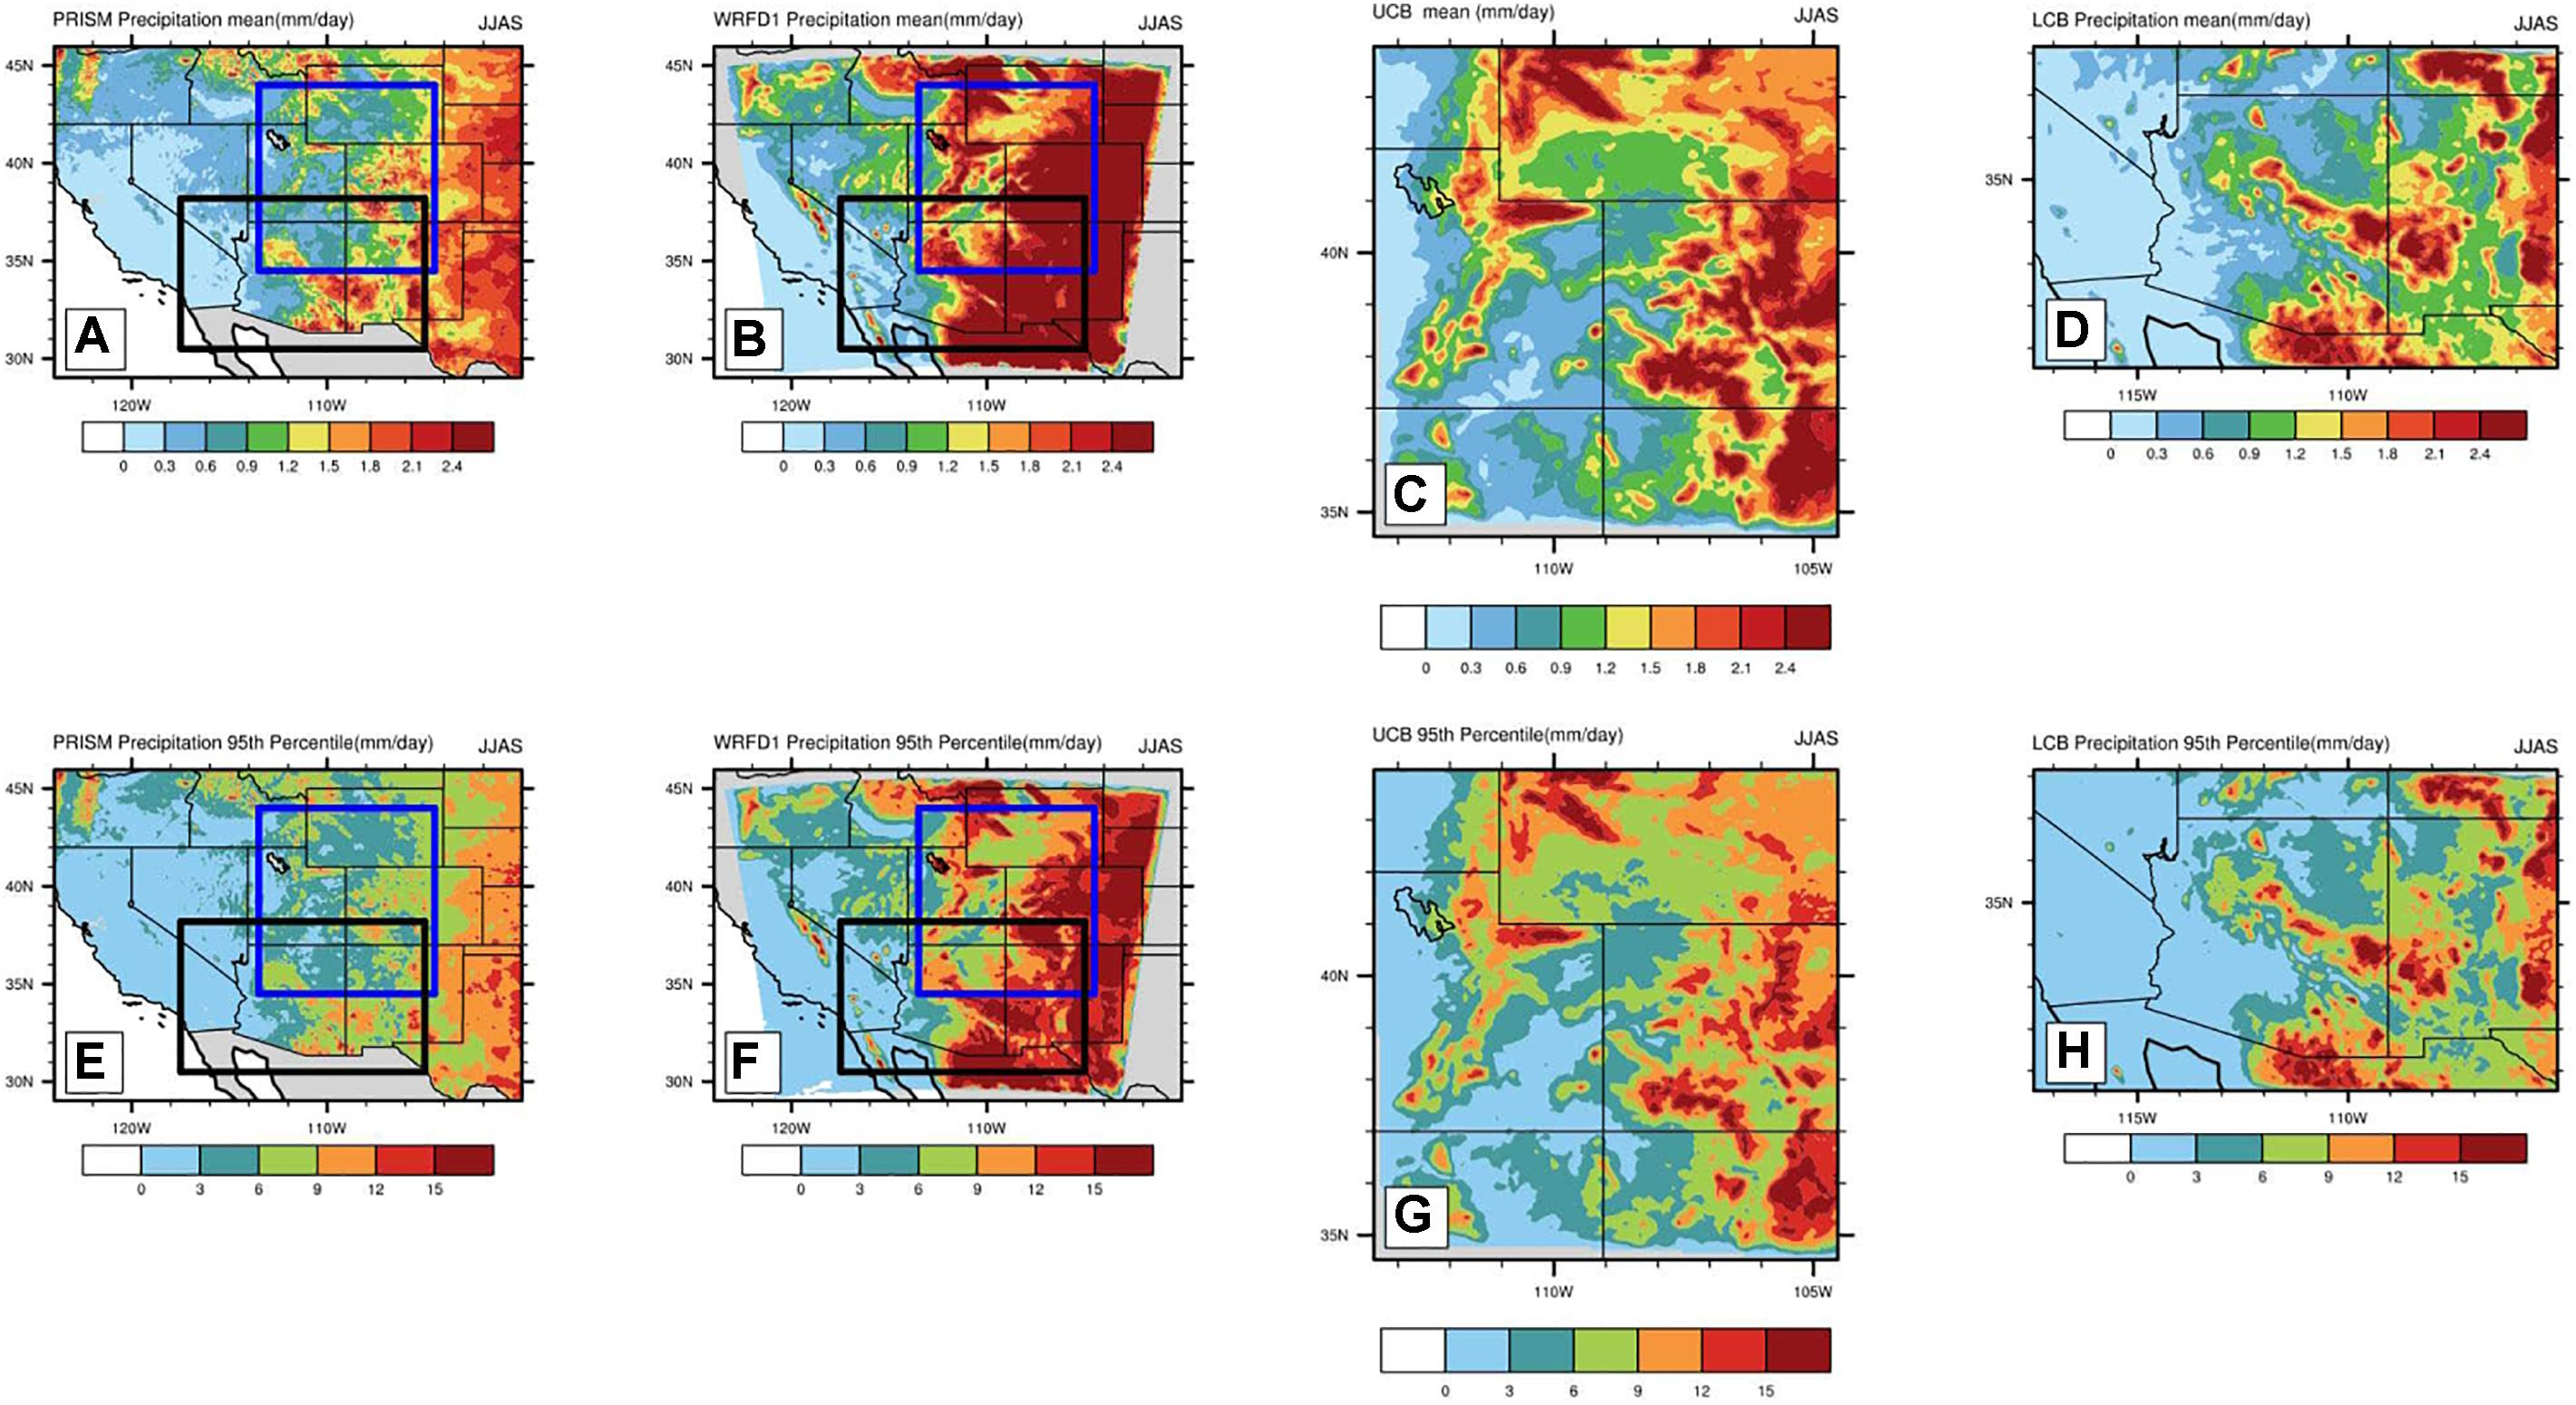 Frontiers | Credibility of Convection-Permitting Modeling to Improve